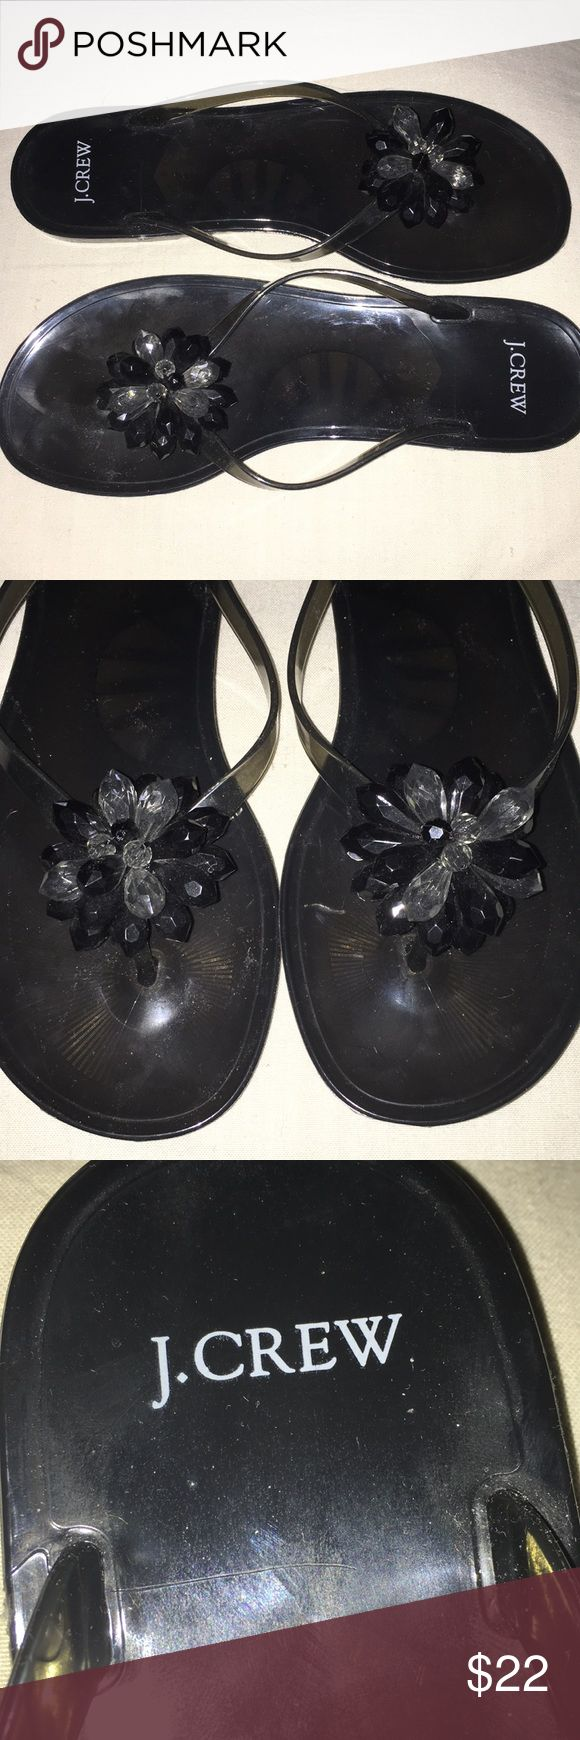 J.Crew Jelly Flip Flops with Beaded Detail Smokey Grey flip flops. Beaded design at the top of plastic.  Never worn. J. Crew Shoes Sandals